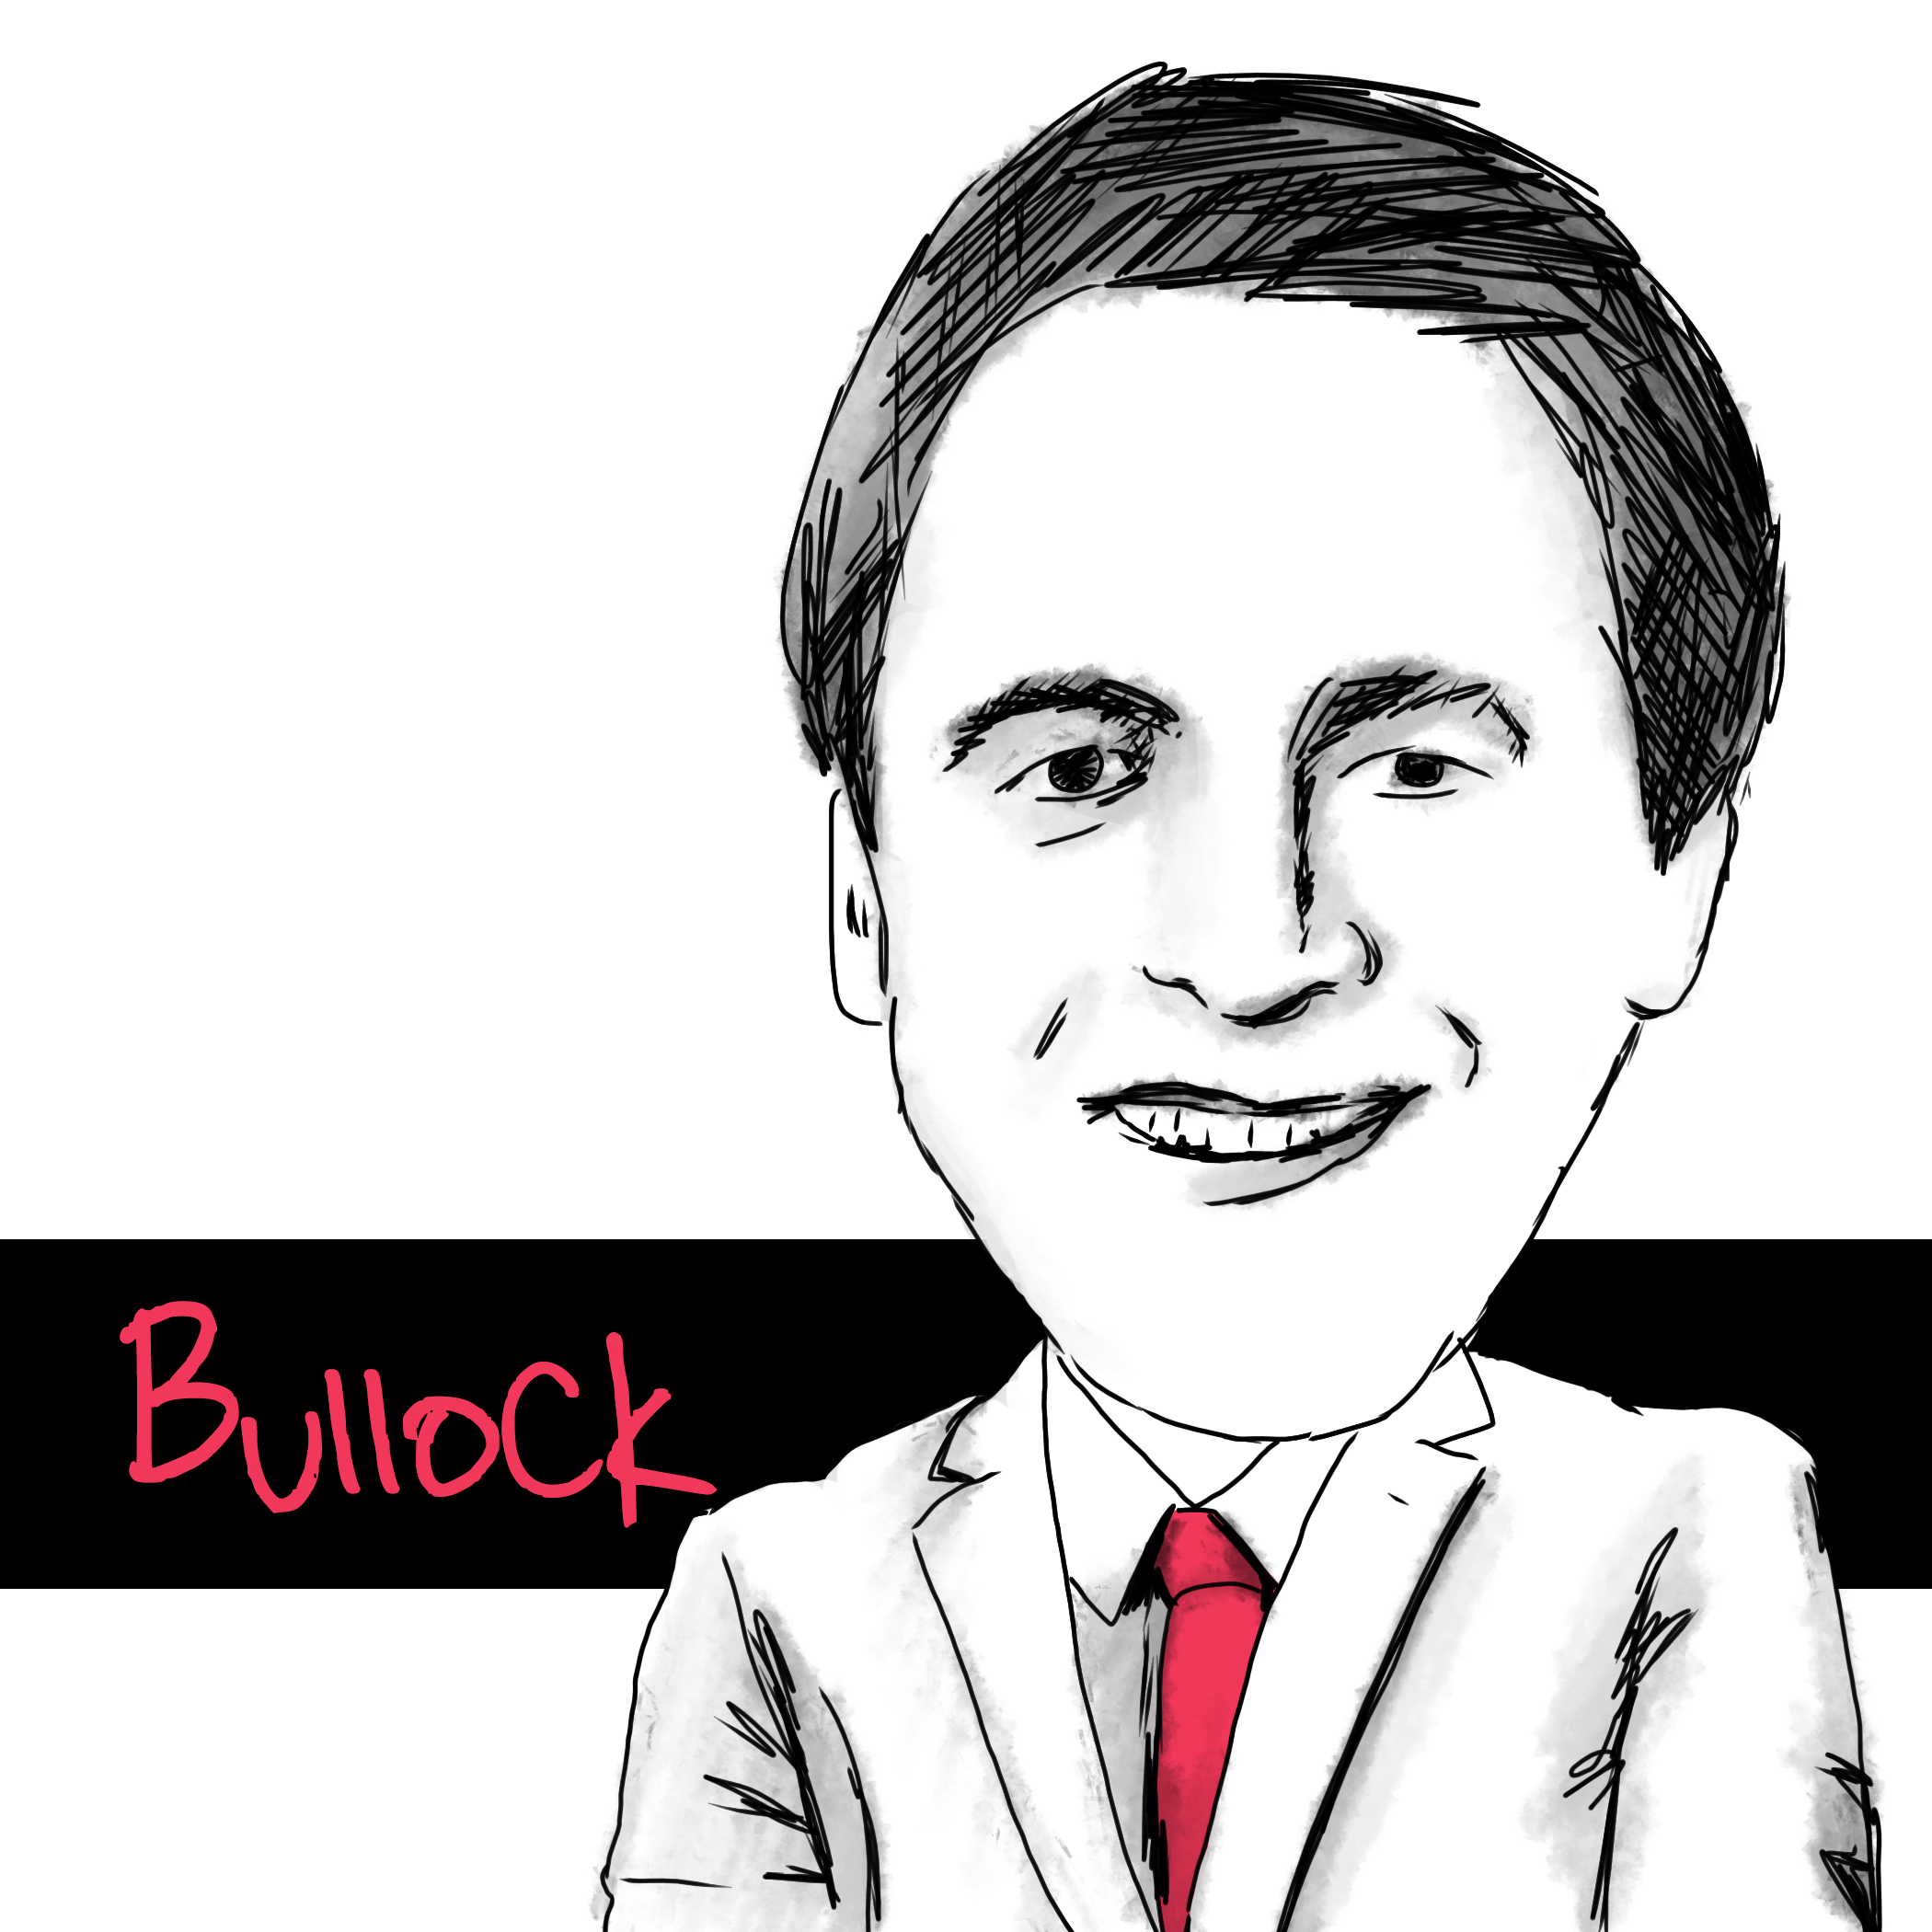 Steve Bullock - A Fair Shot For Everyone - https://stevebullock.com